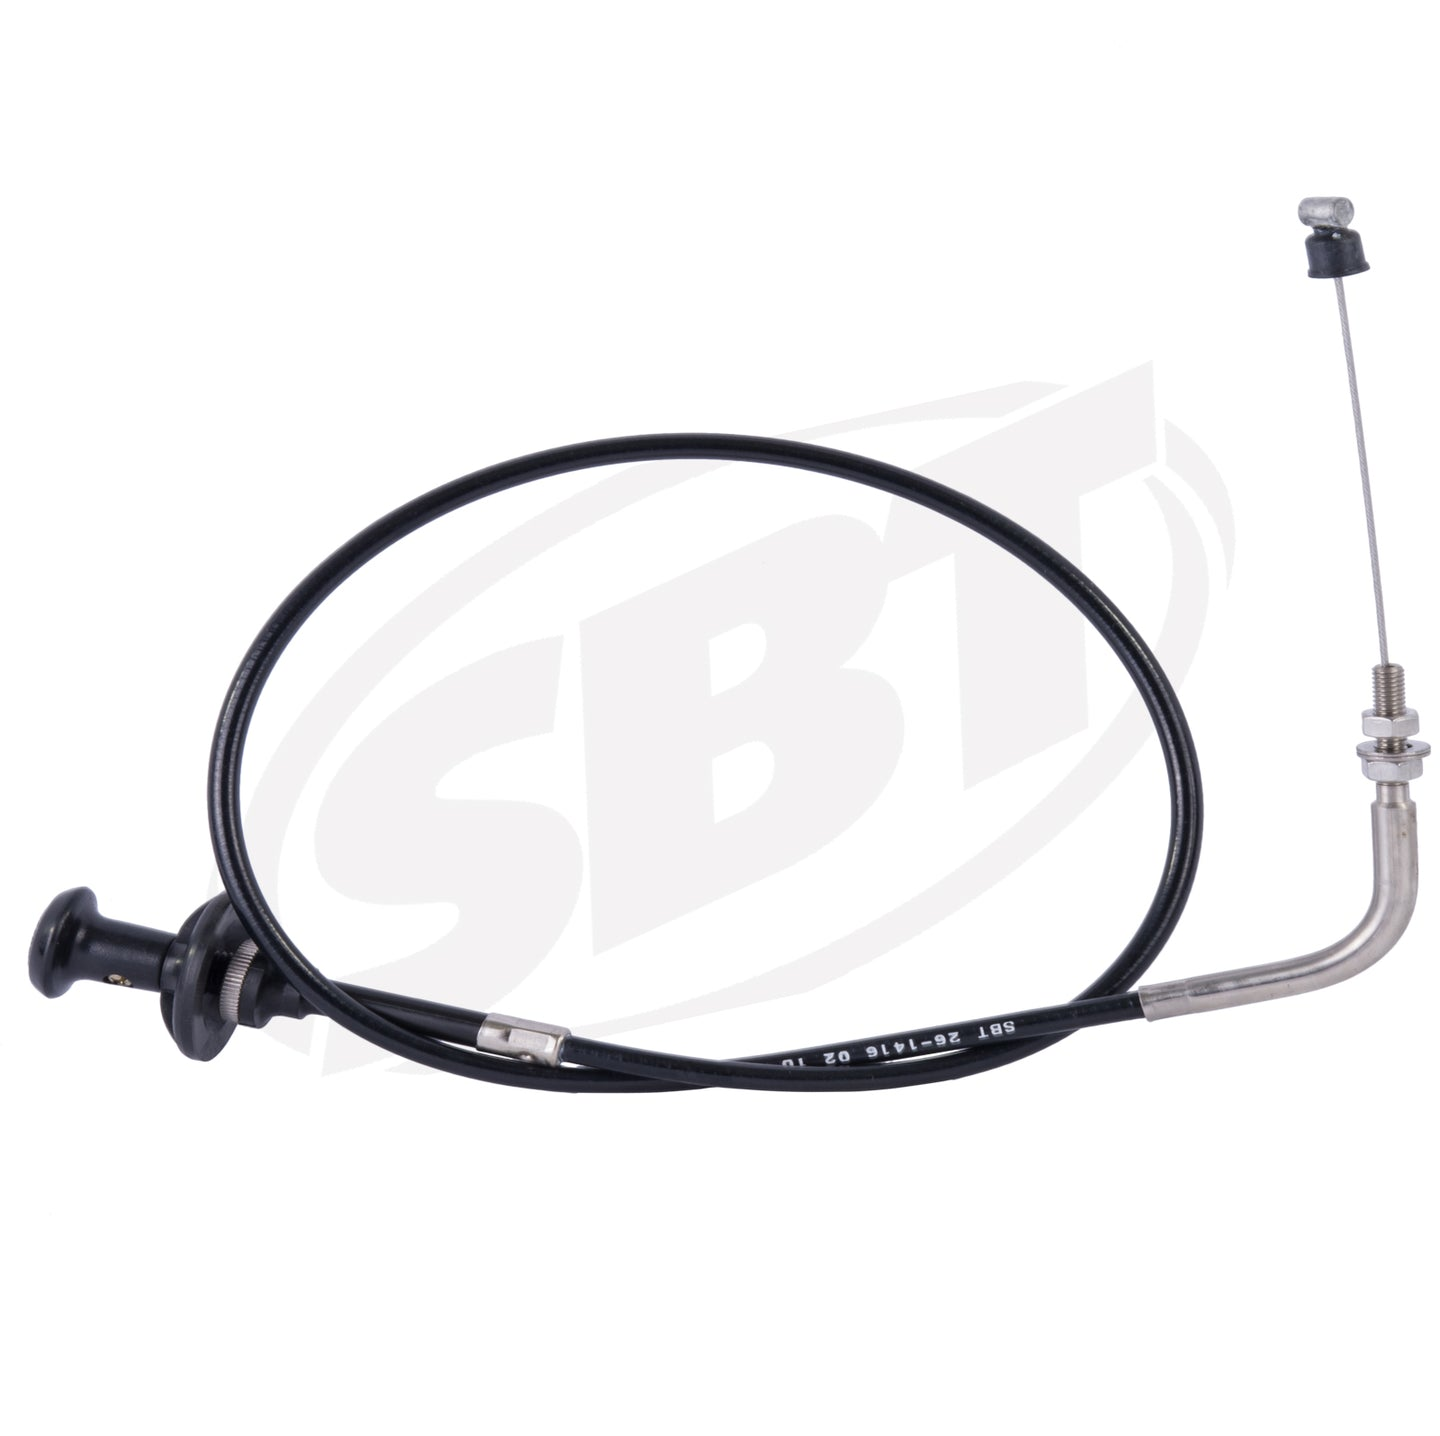 SBT Yamaha Choke Cable Wave Raider 760 GP2-U7242-02-00 1996